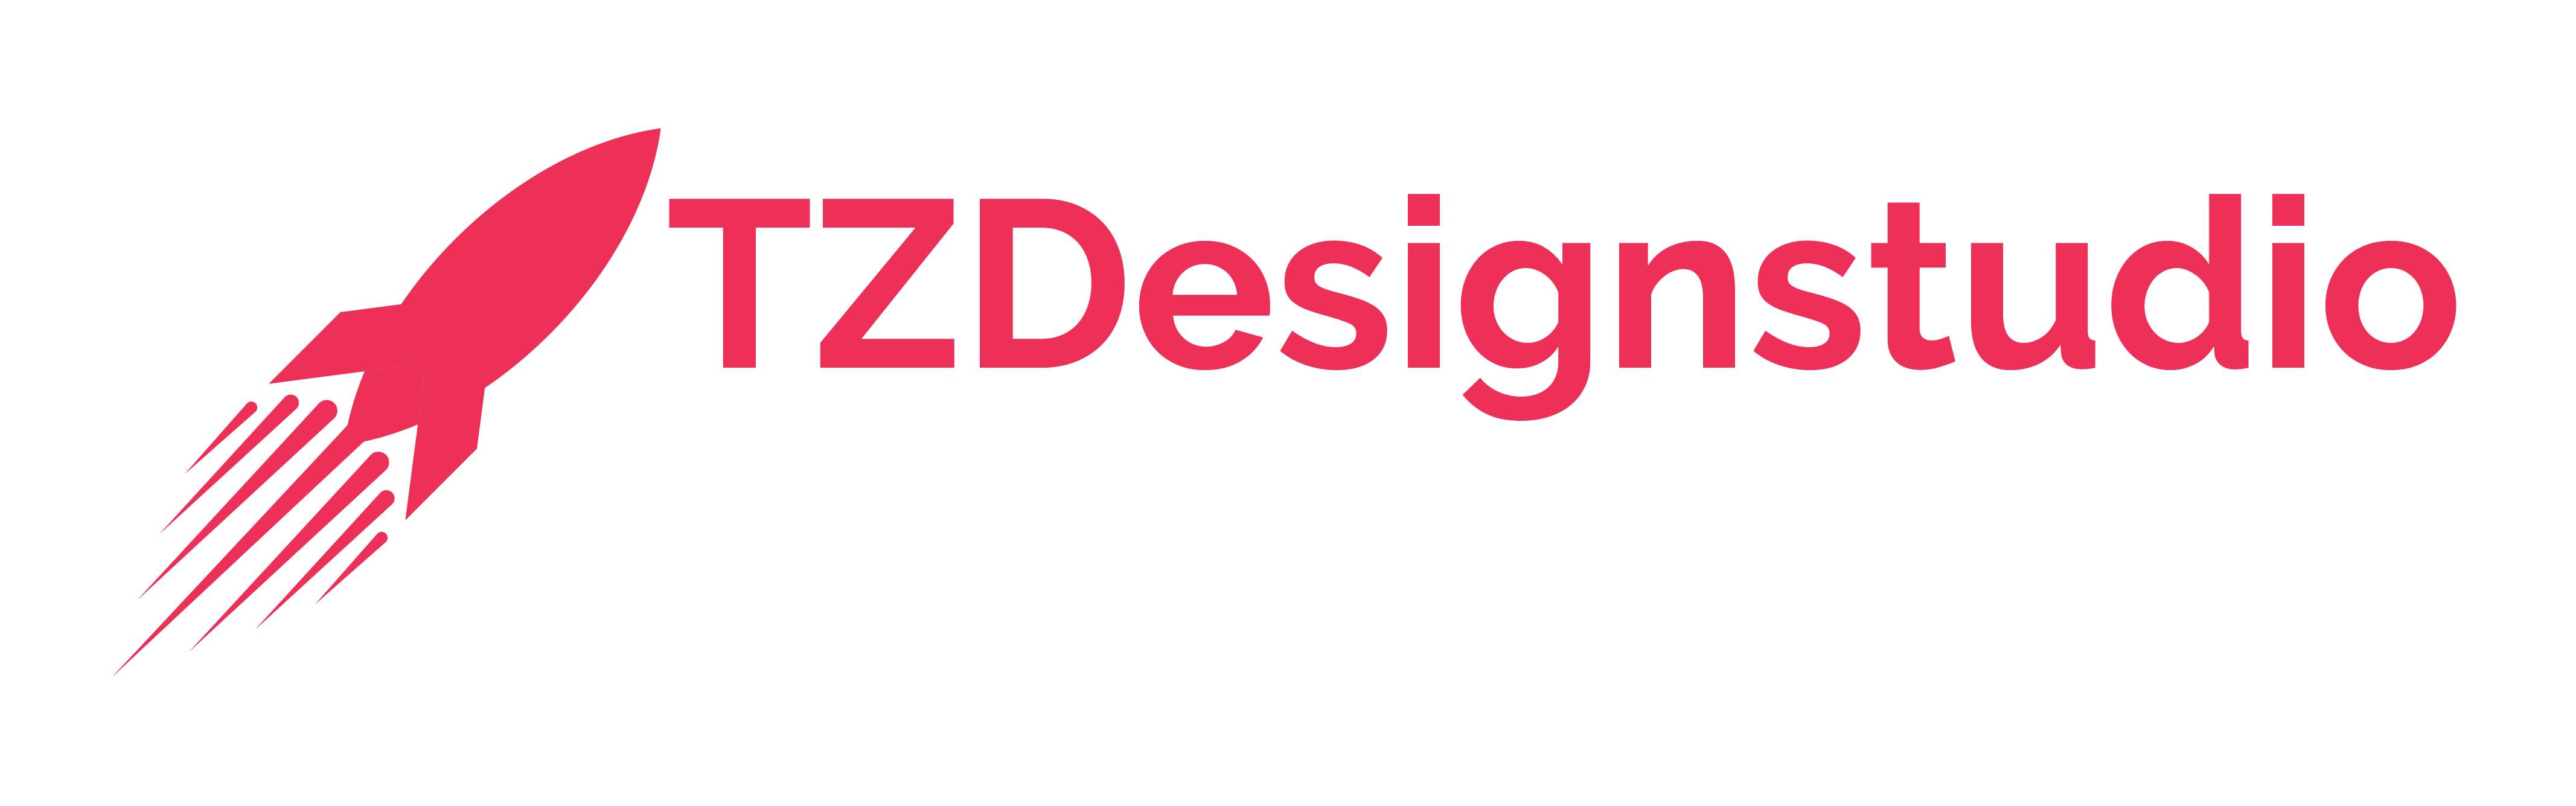 TZDesign Studio Logo